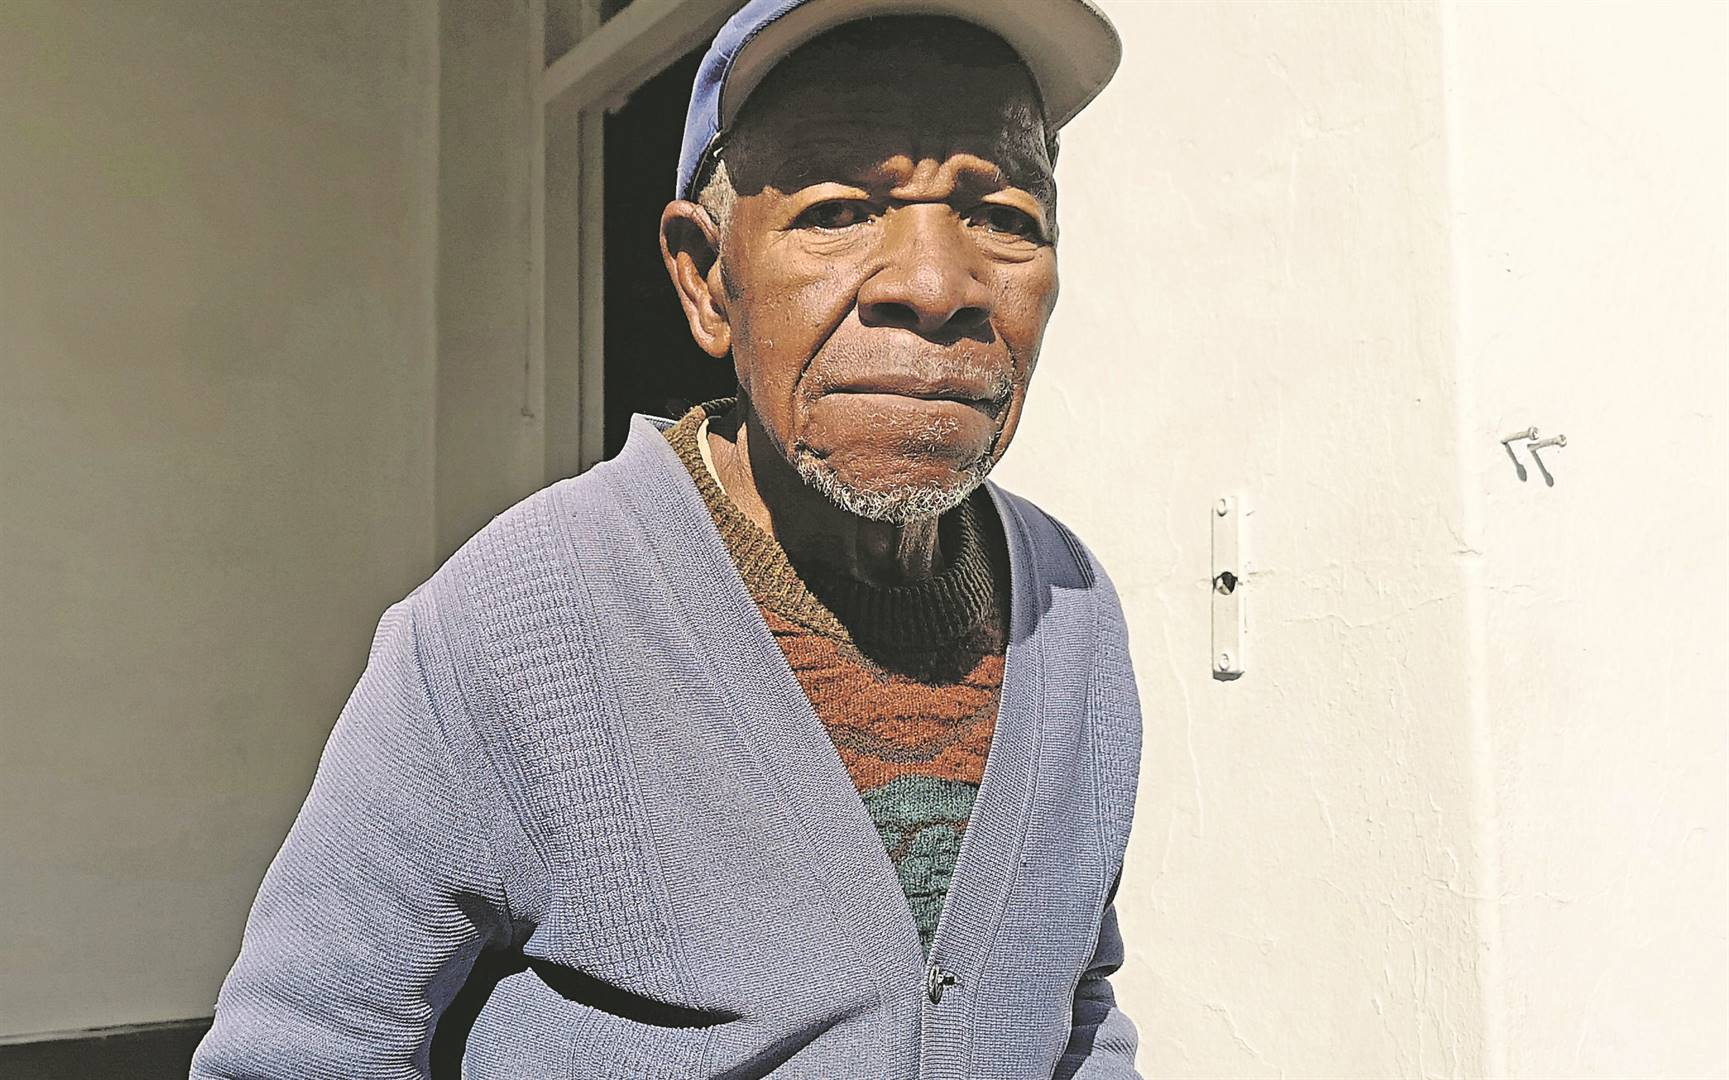 Samson Mshengu (104) used a machete to chase away seven men who claimed to be MK war veterans after they threatened to take his house.